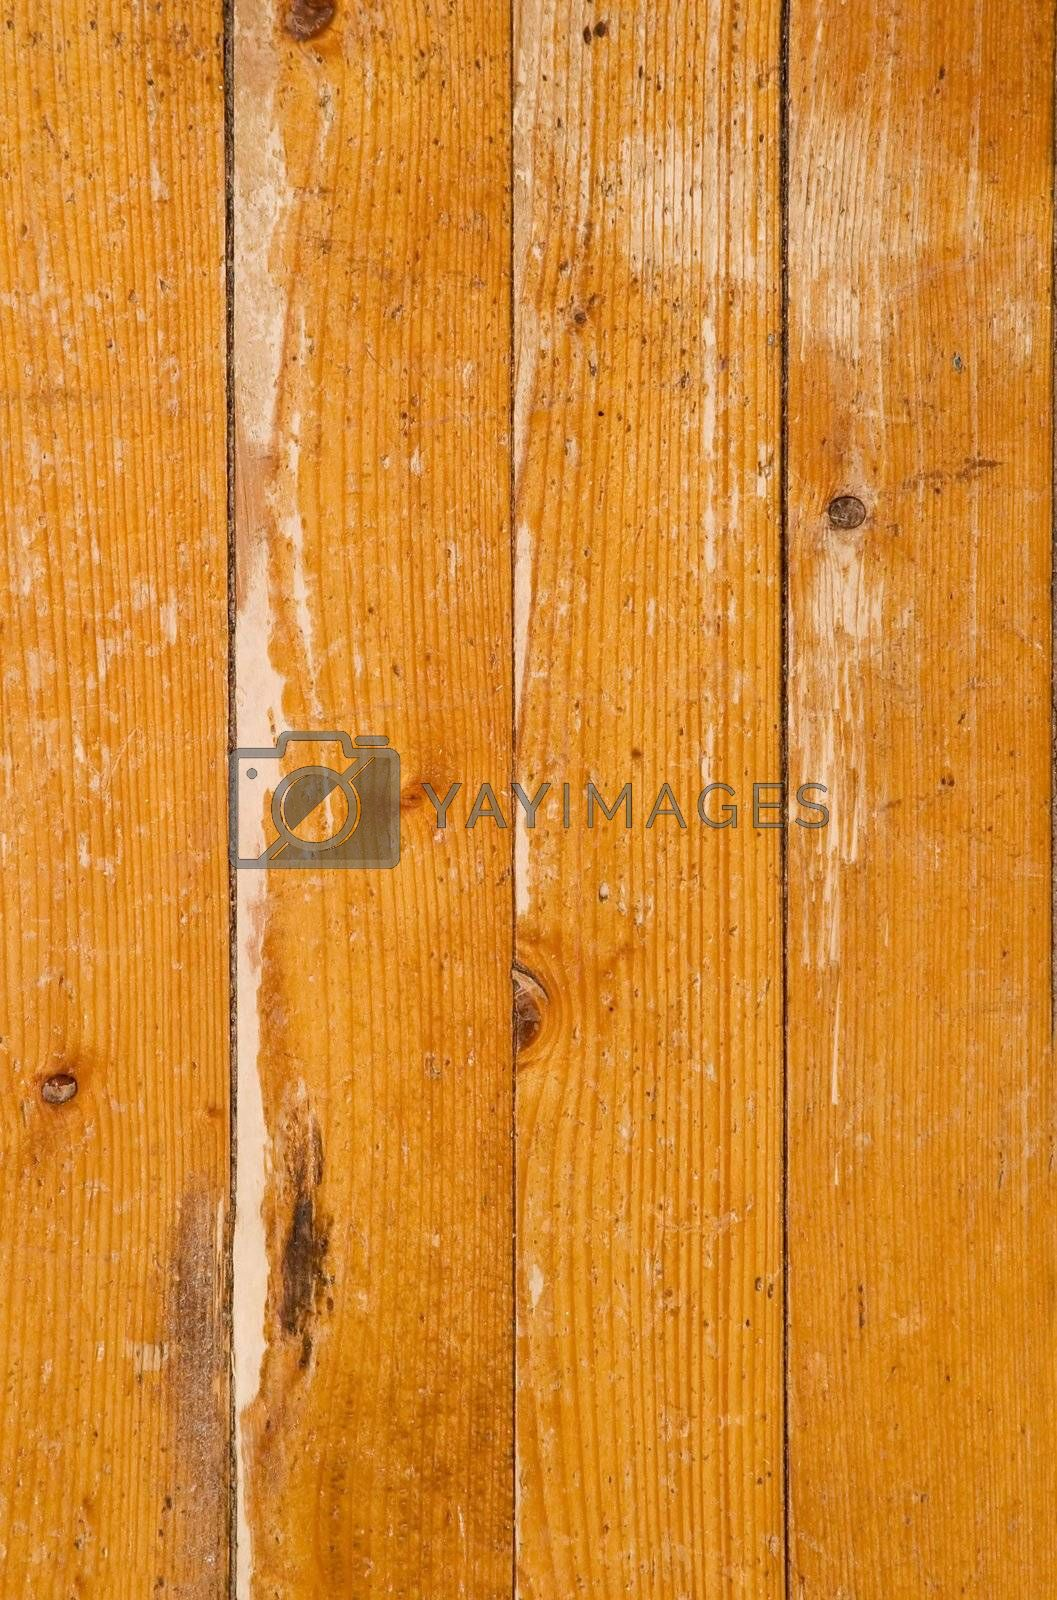 An old worn out hardwood floor texture background image